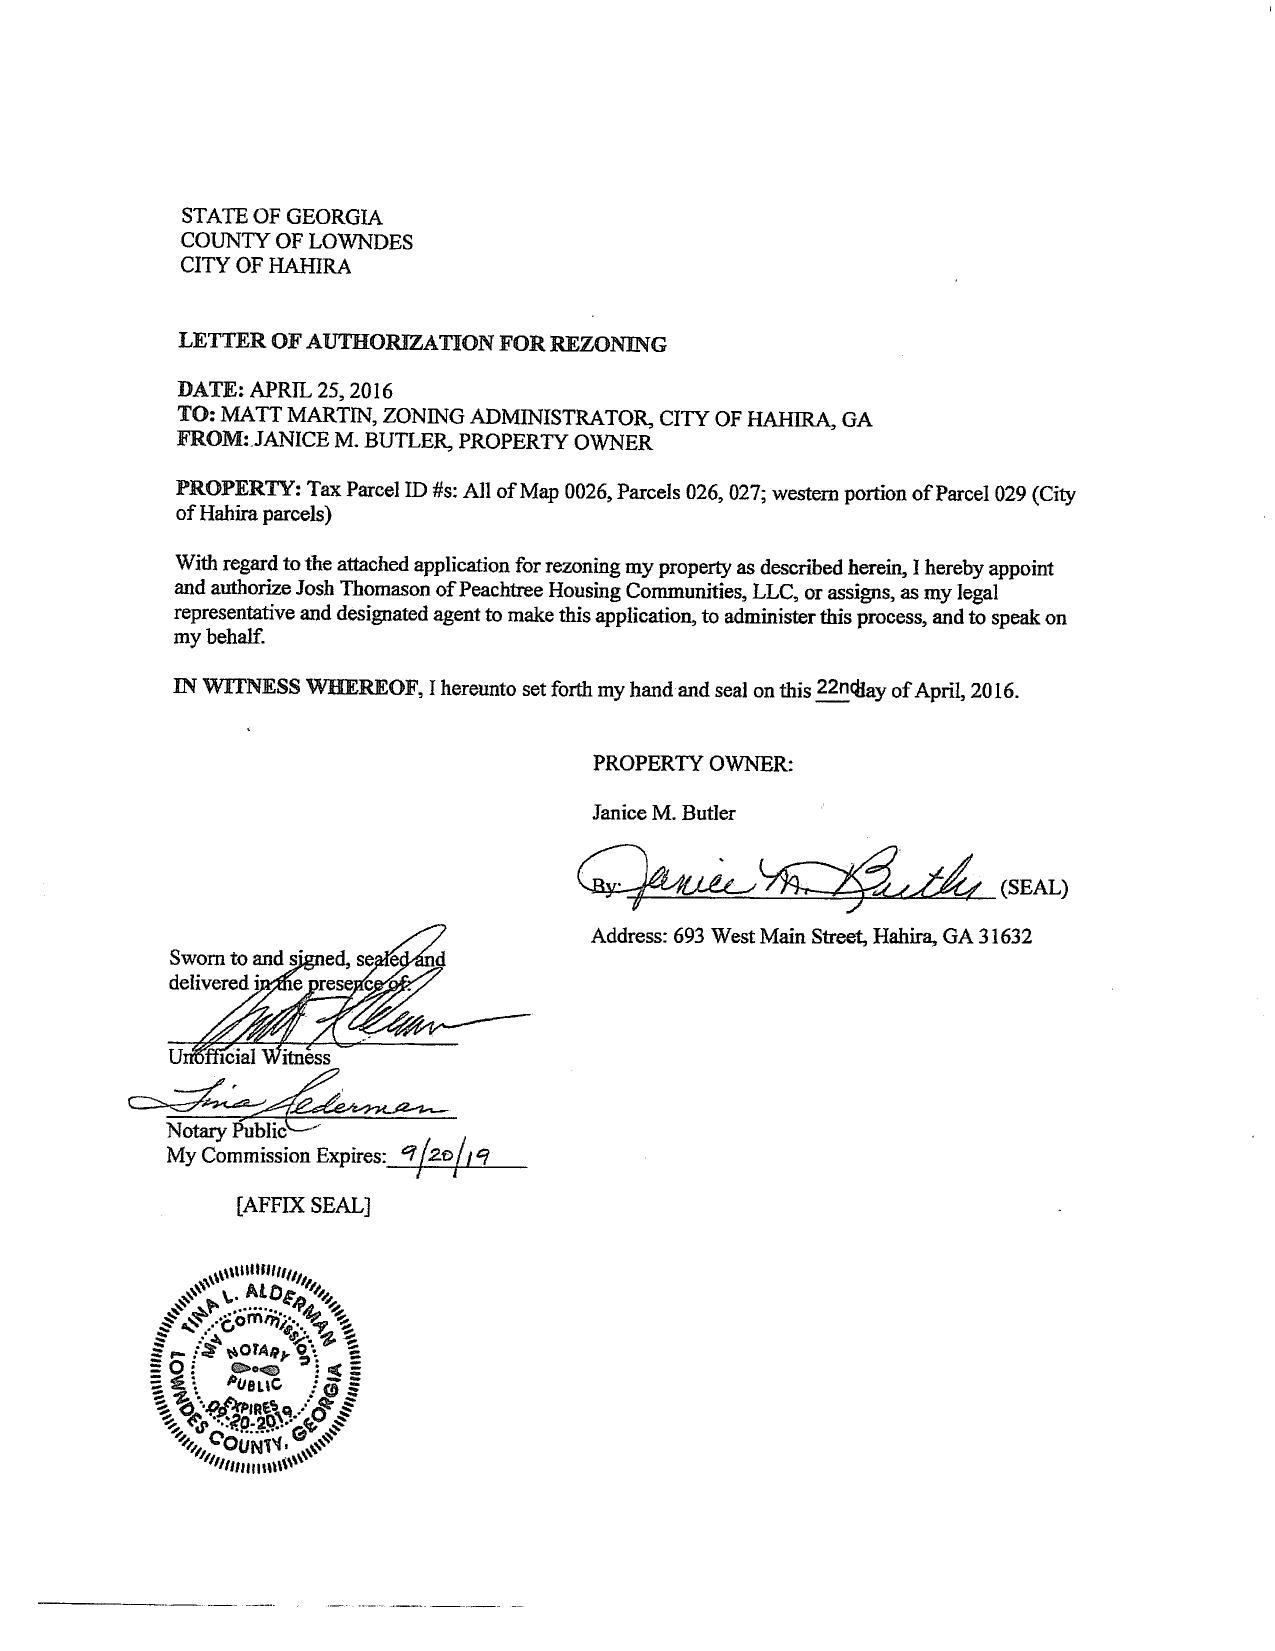 Letter of Authorization by property owner